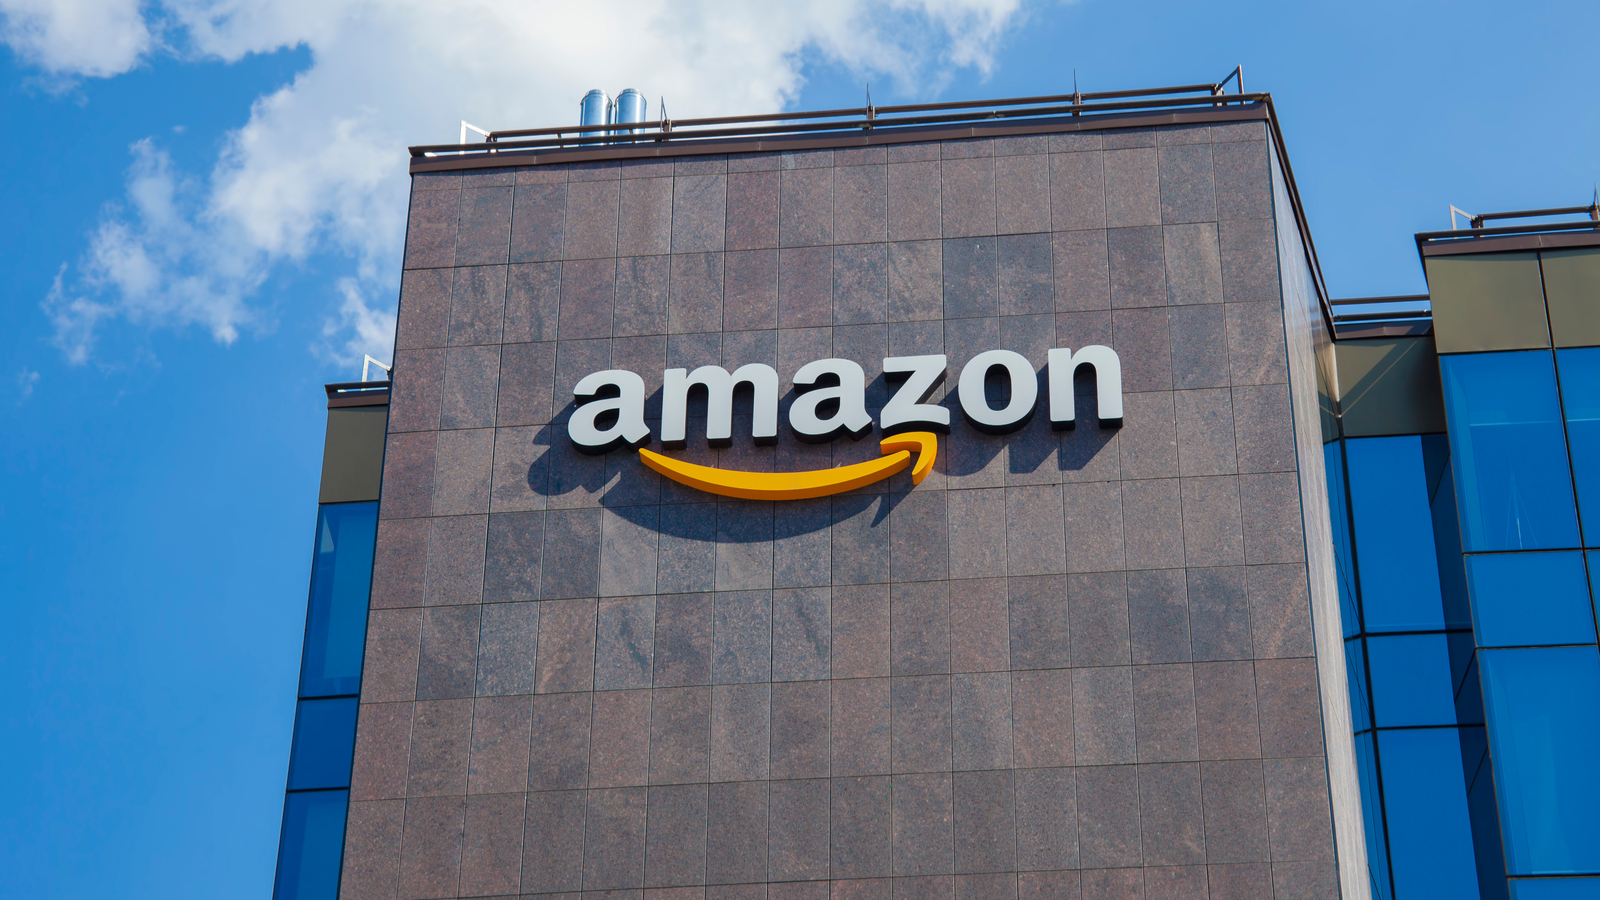 L'informatique quantique selon Amazon — Braket